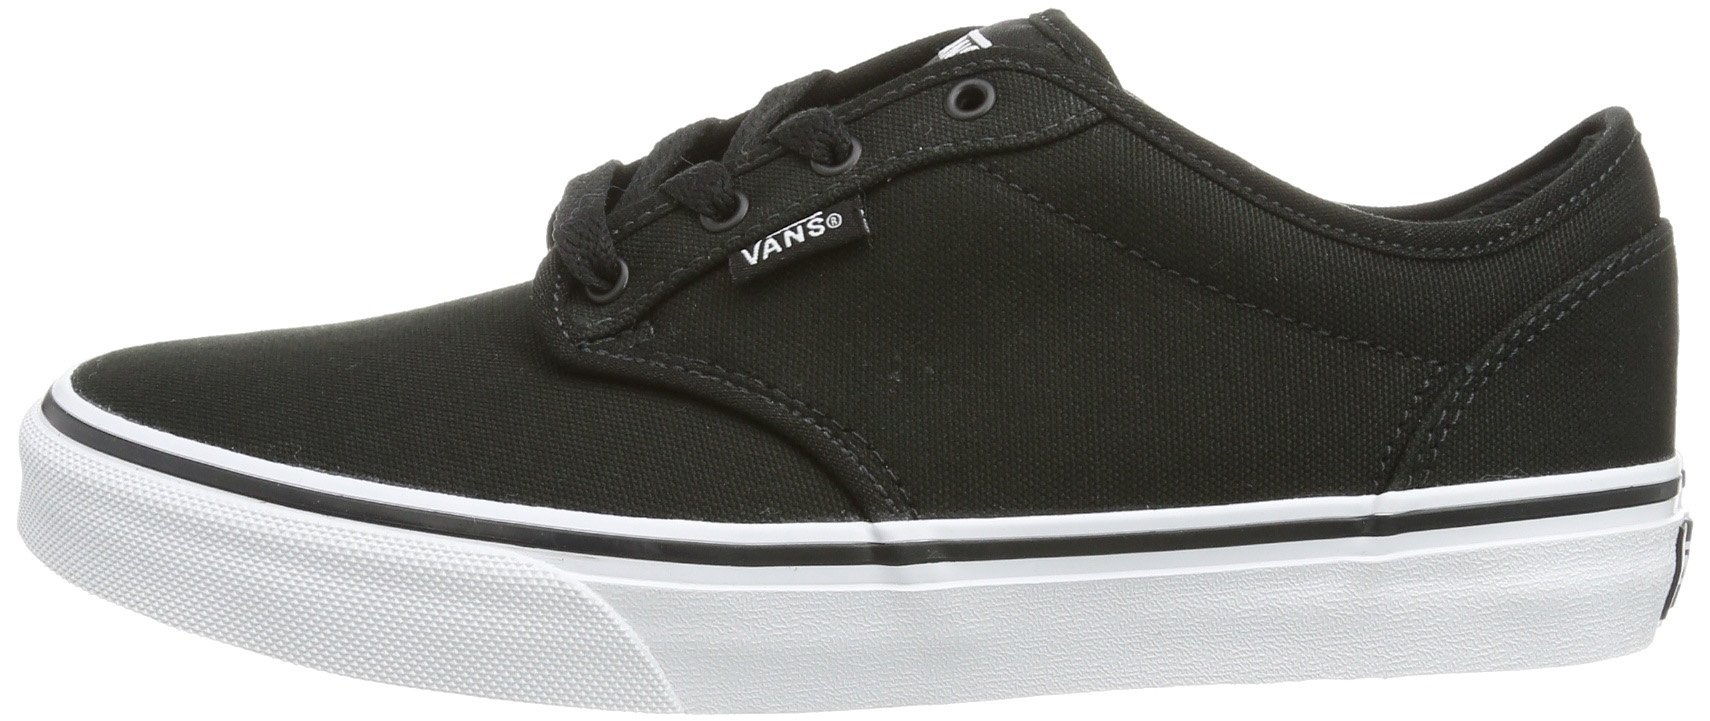 vans y atwood bambino